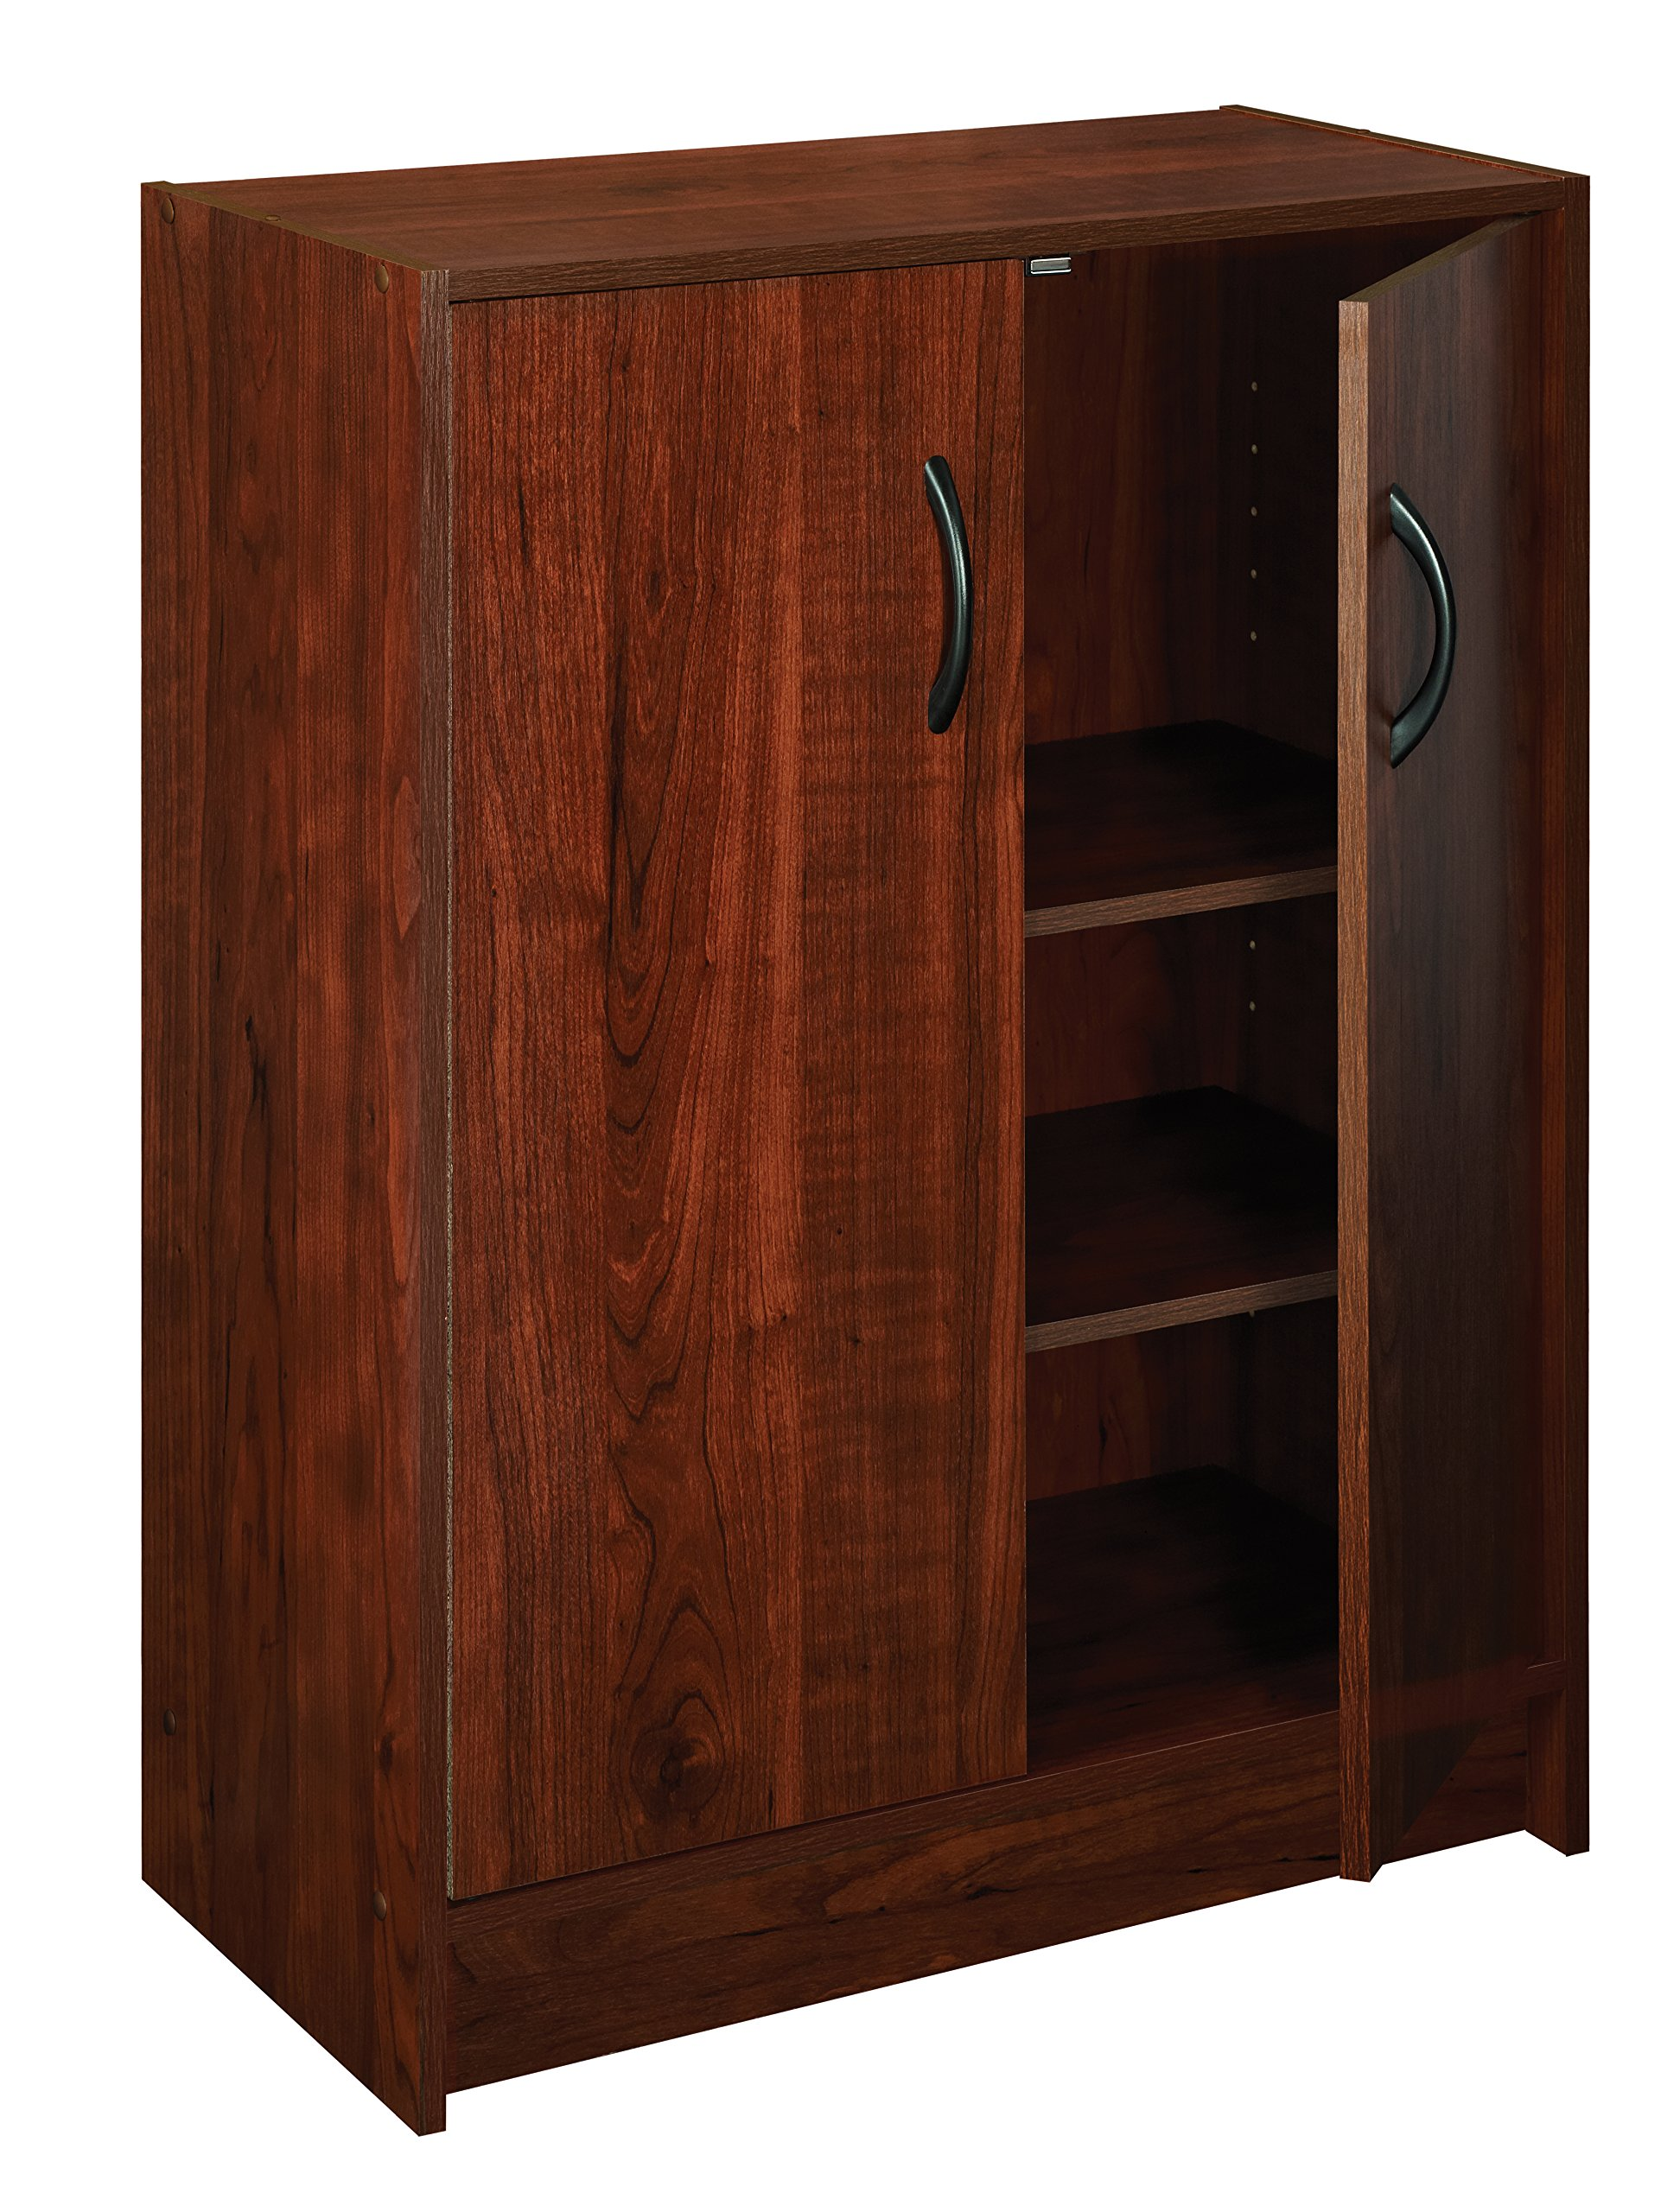 ClosetMaid 1307 Stackable 2-Door Organizer, Dark Cherry by ClosetMaid